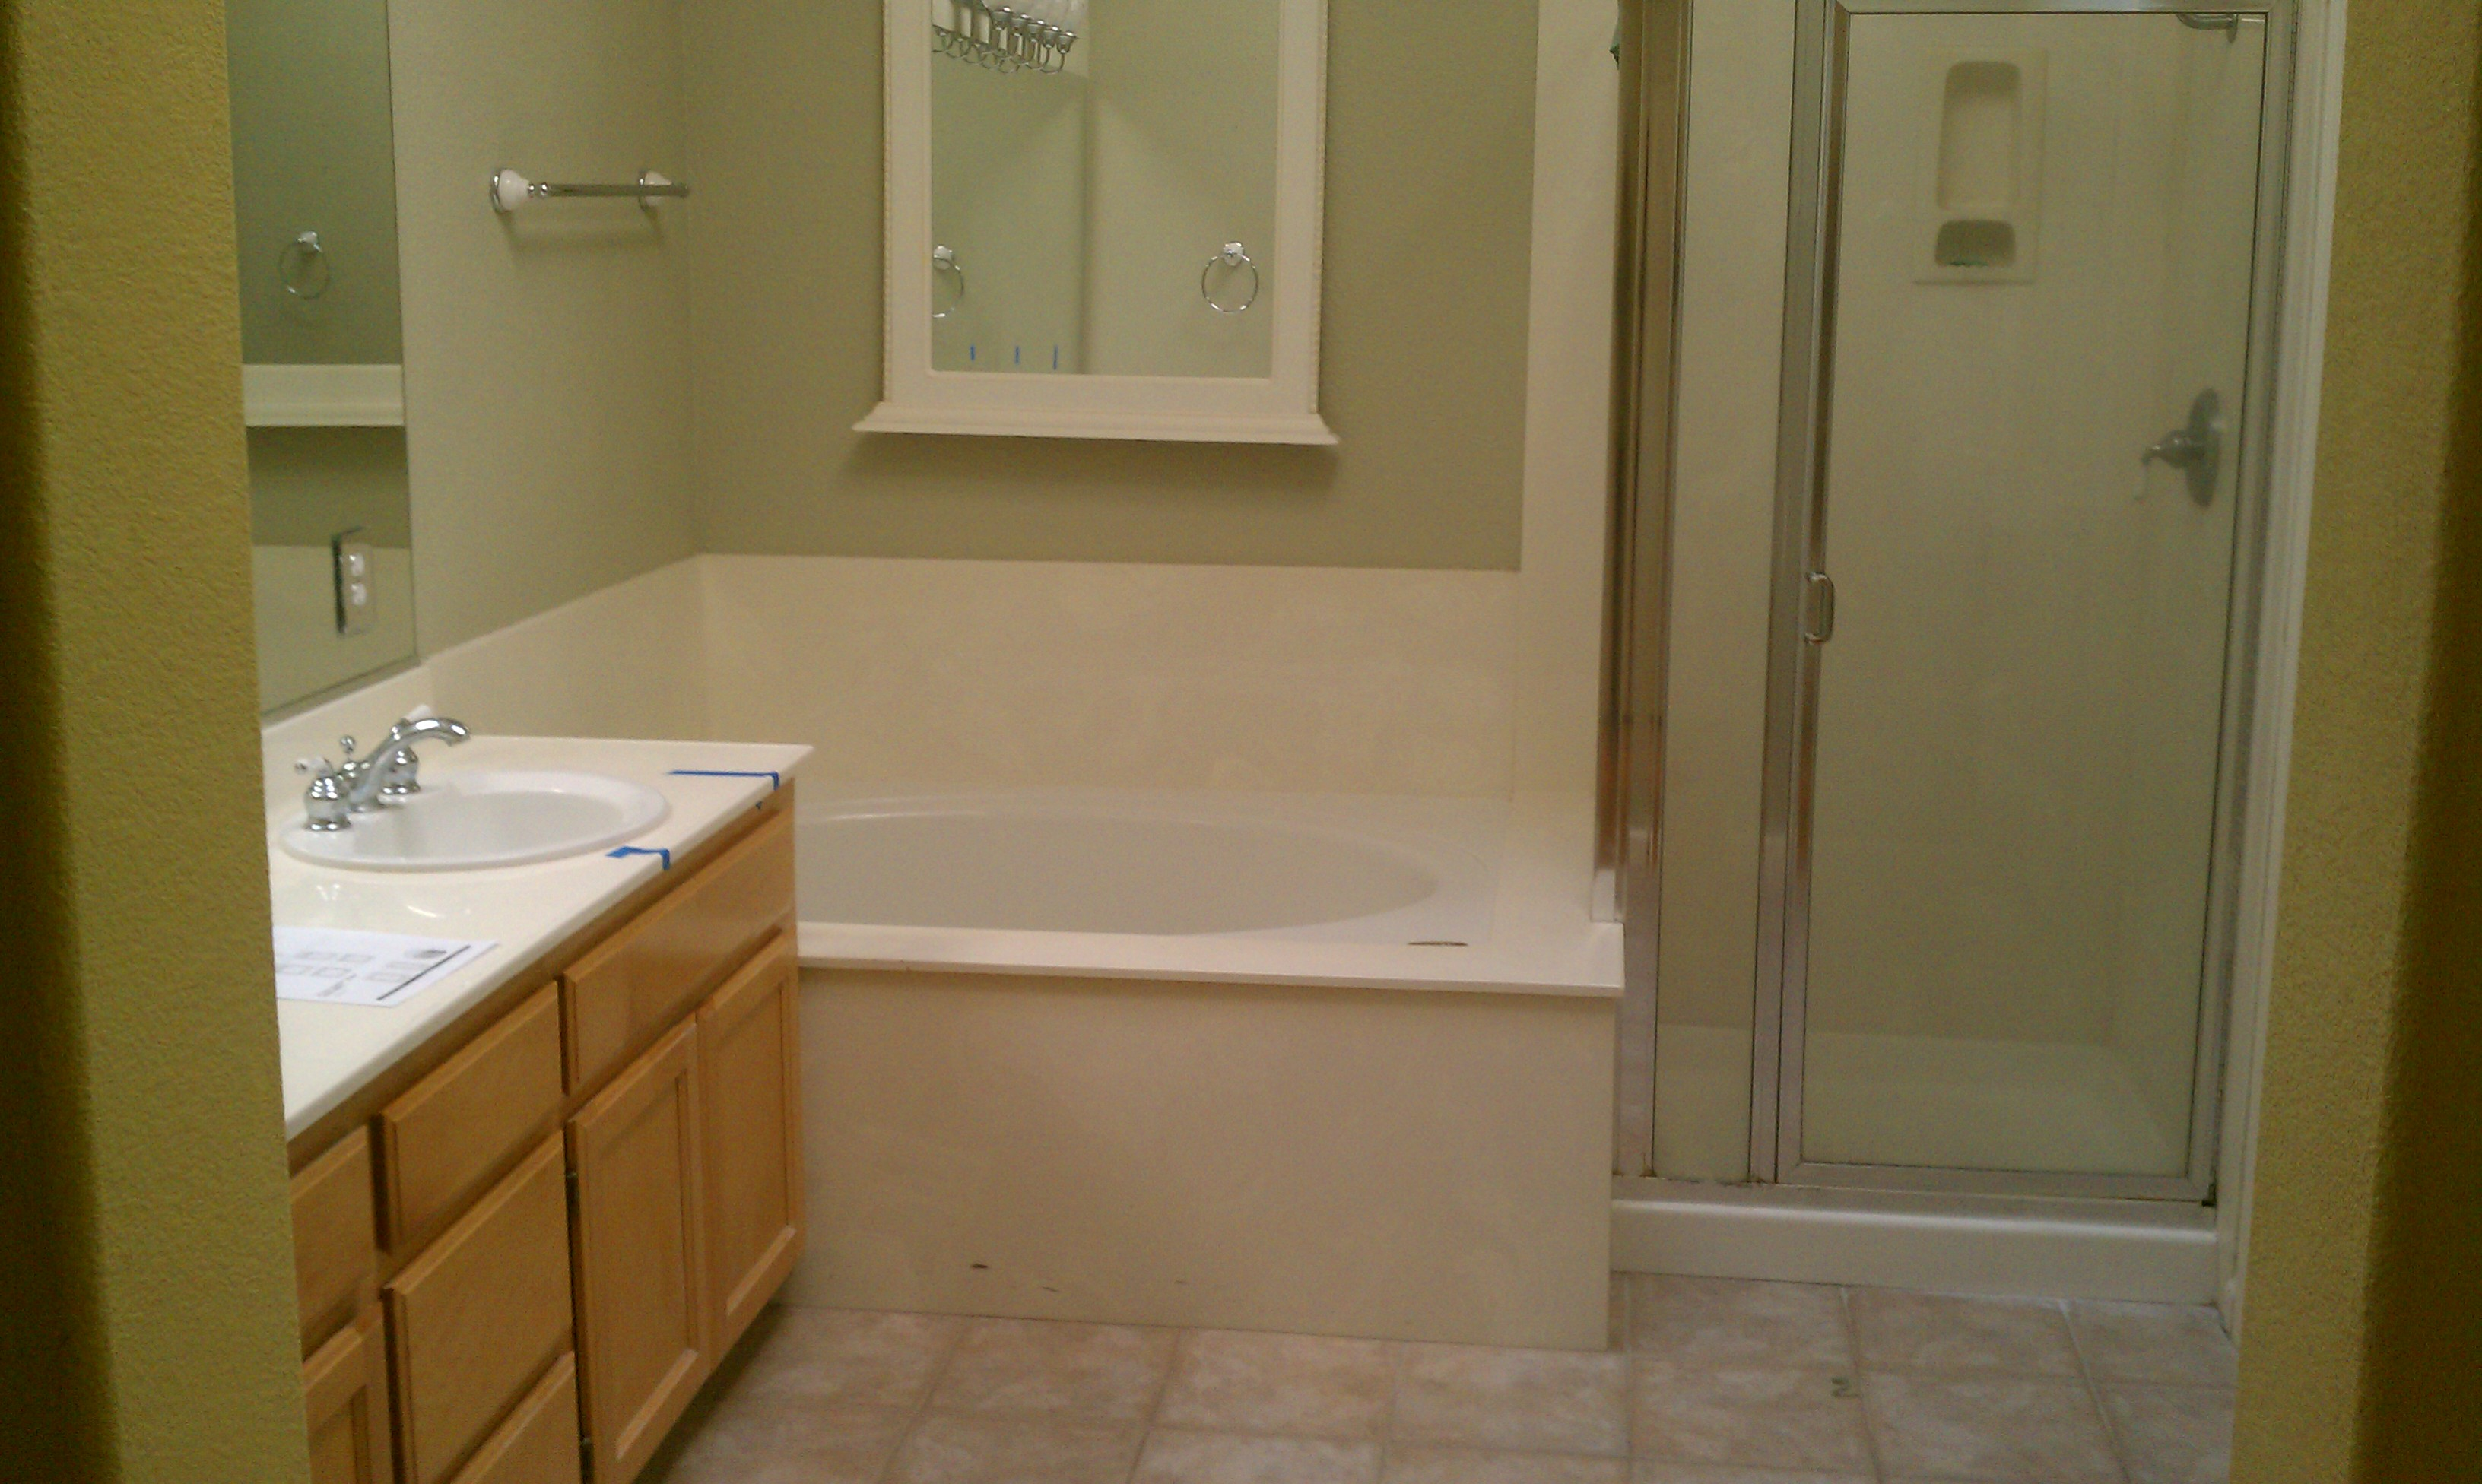 Bathroom Remodel By CWI General Contractor In Livermore - 3 piece bathroom remodel